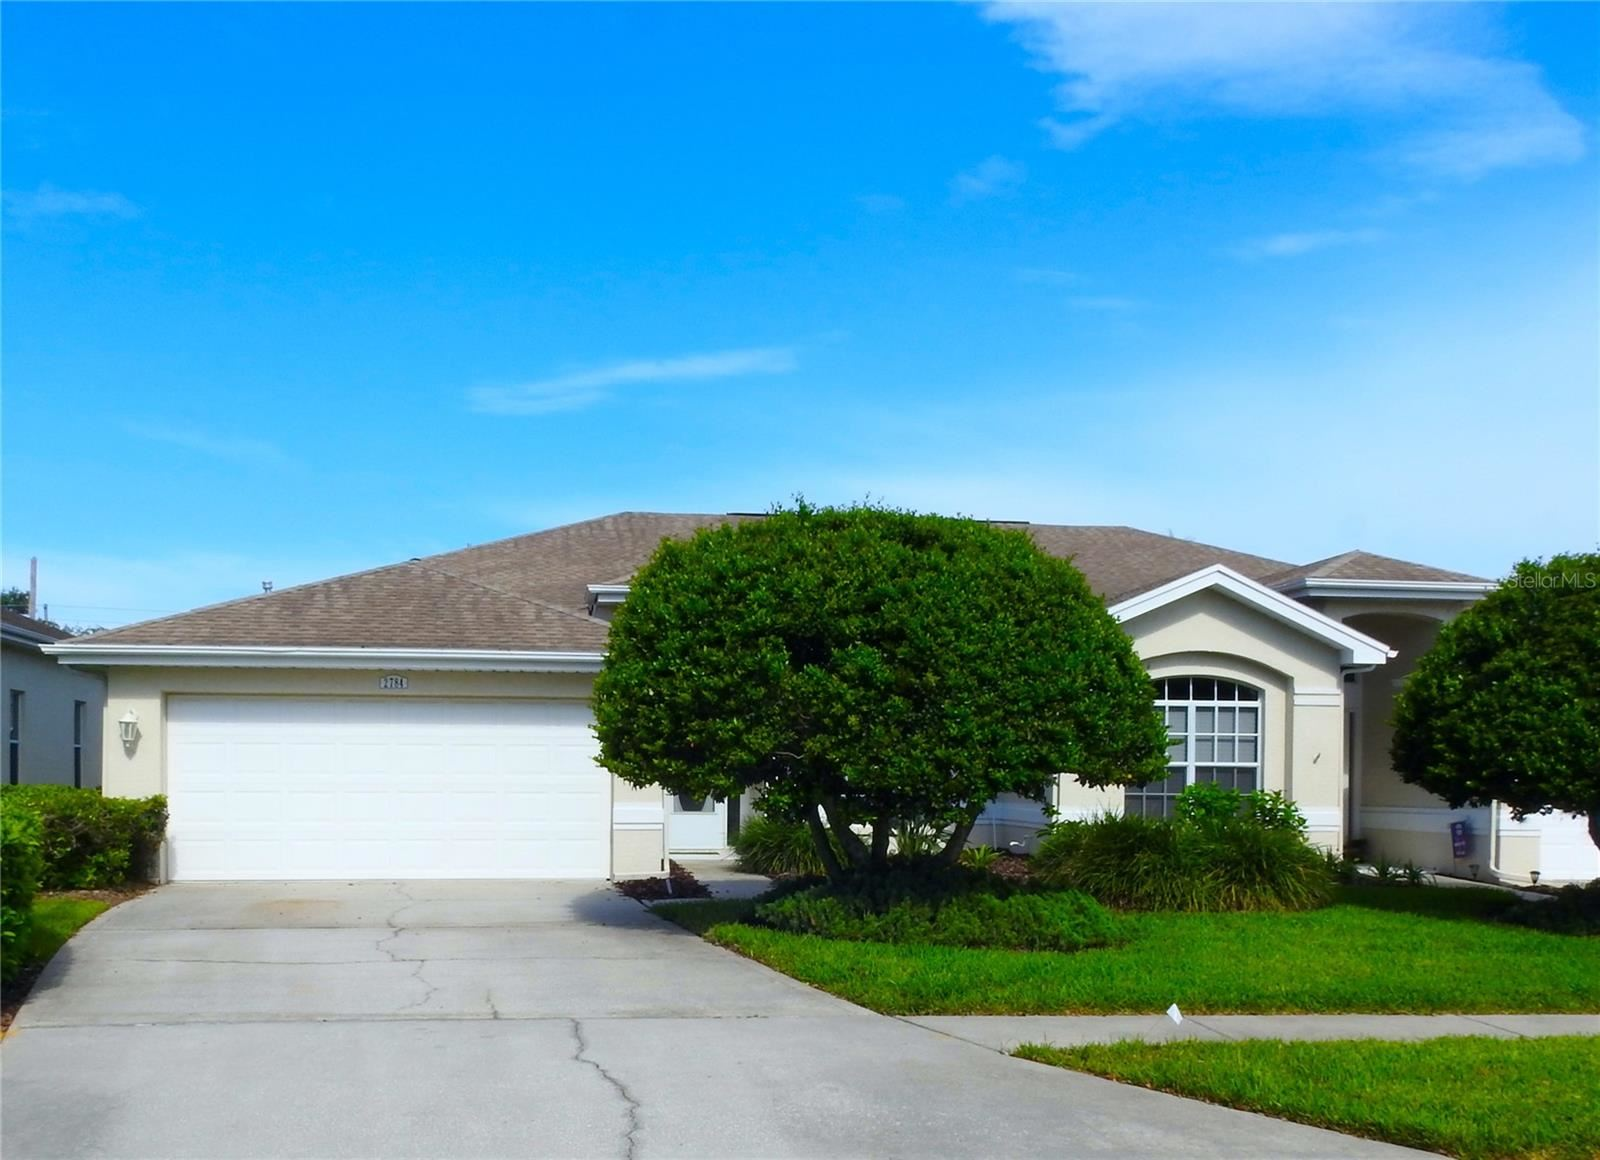 2784 COUNTRY WAY, Clearwater, FL 33763 - #: U8129382